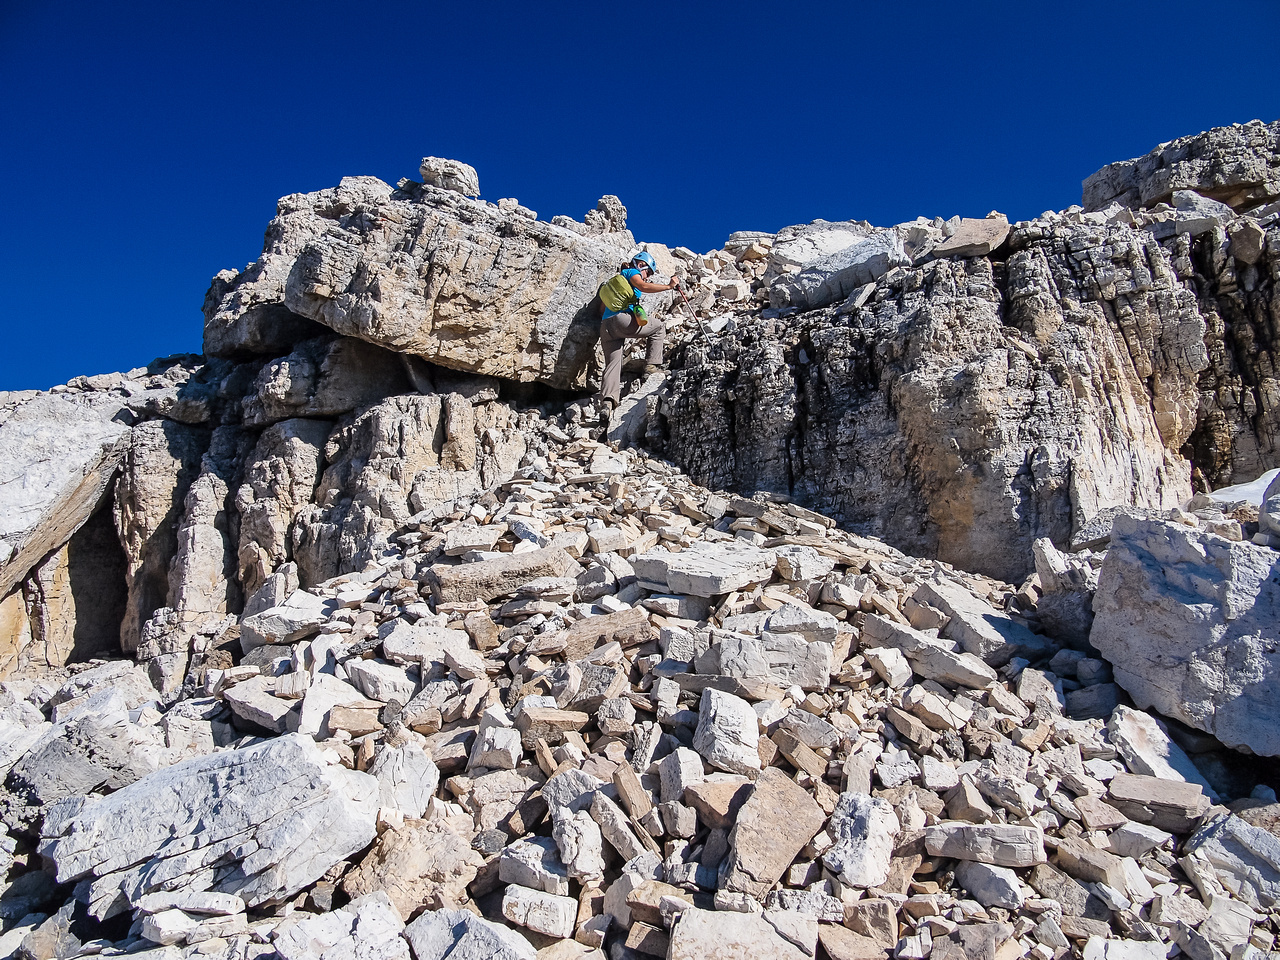 A few more small cliff bands before the large summit plateau.